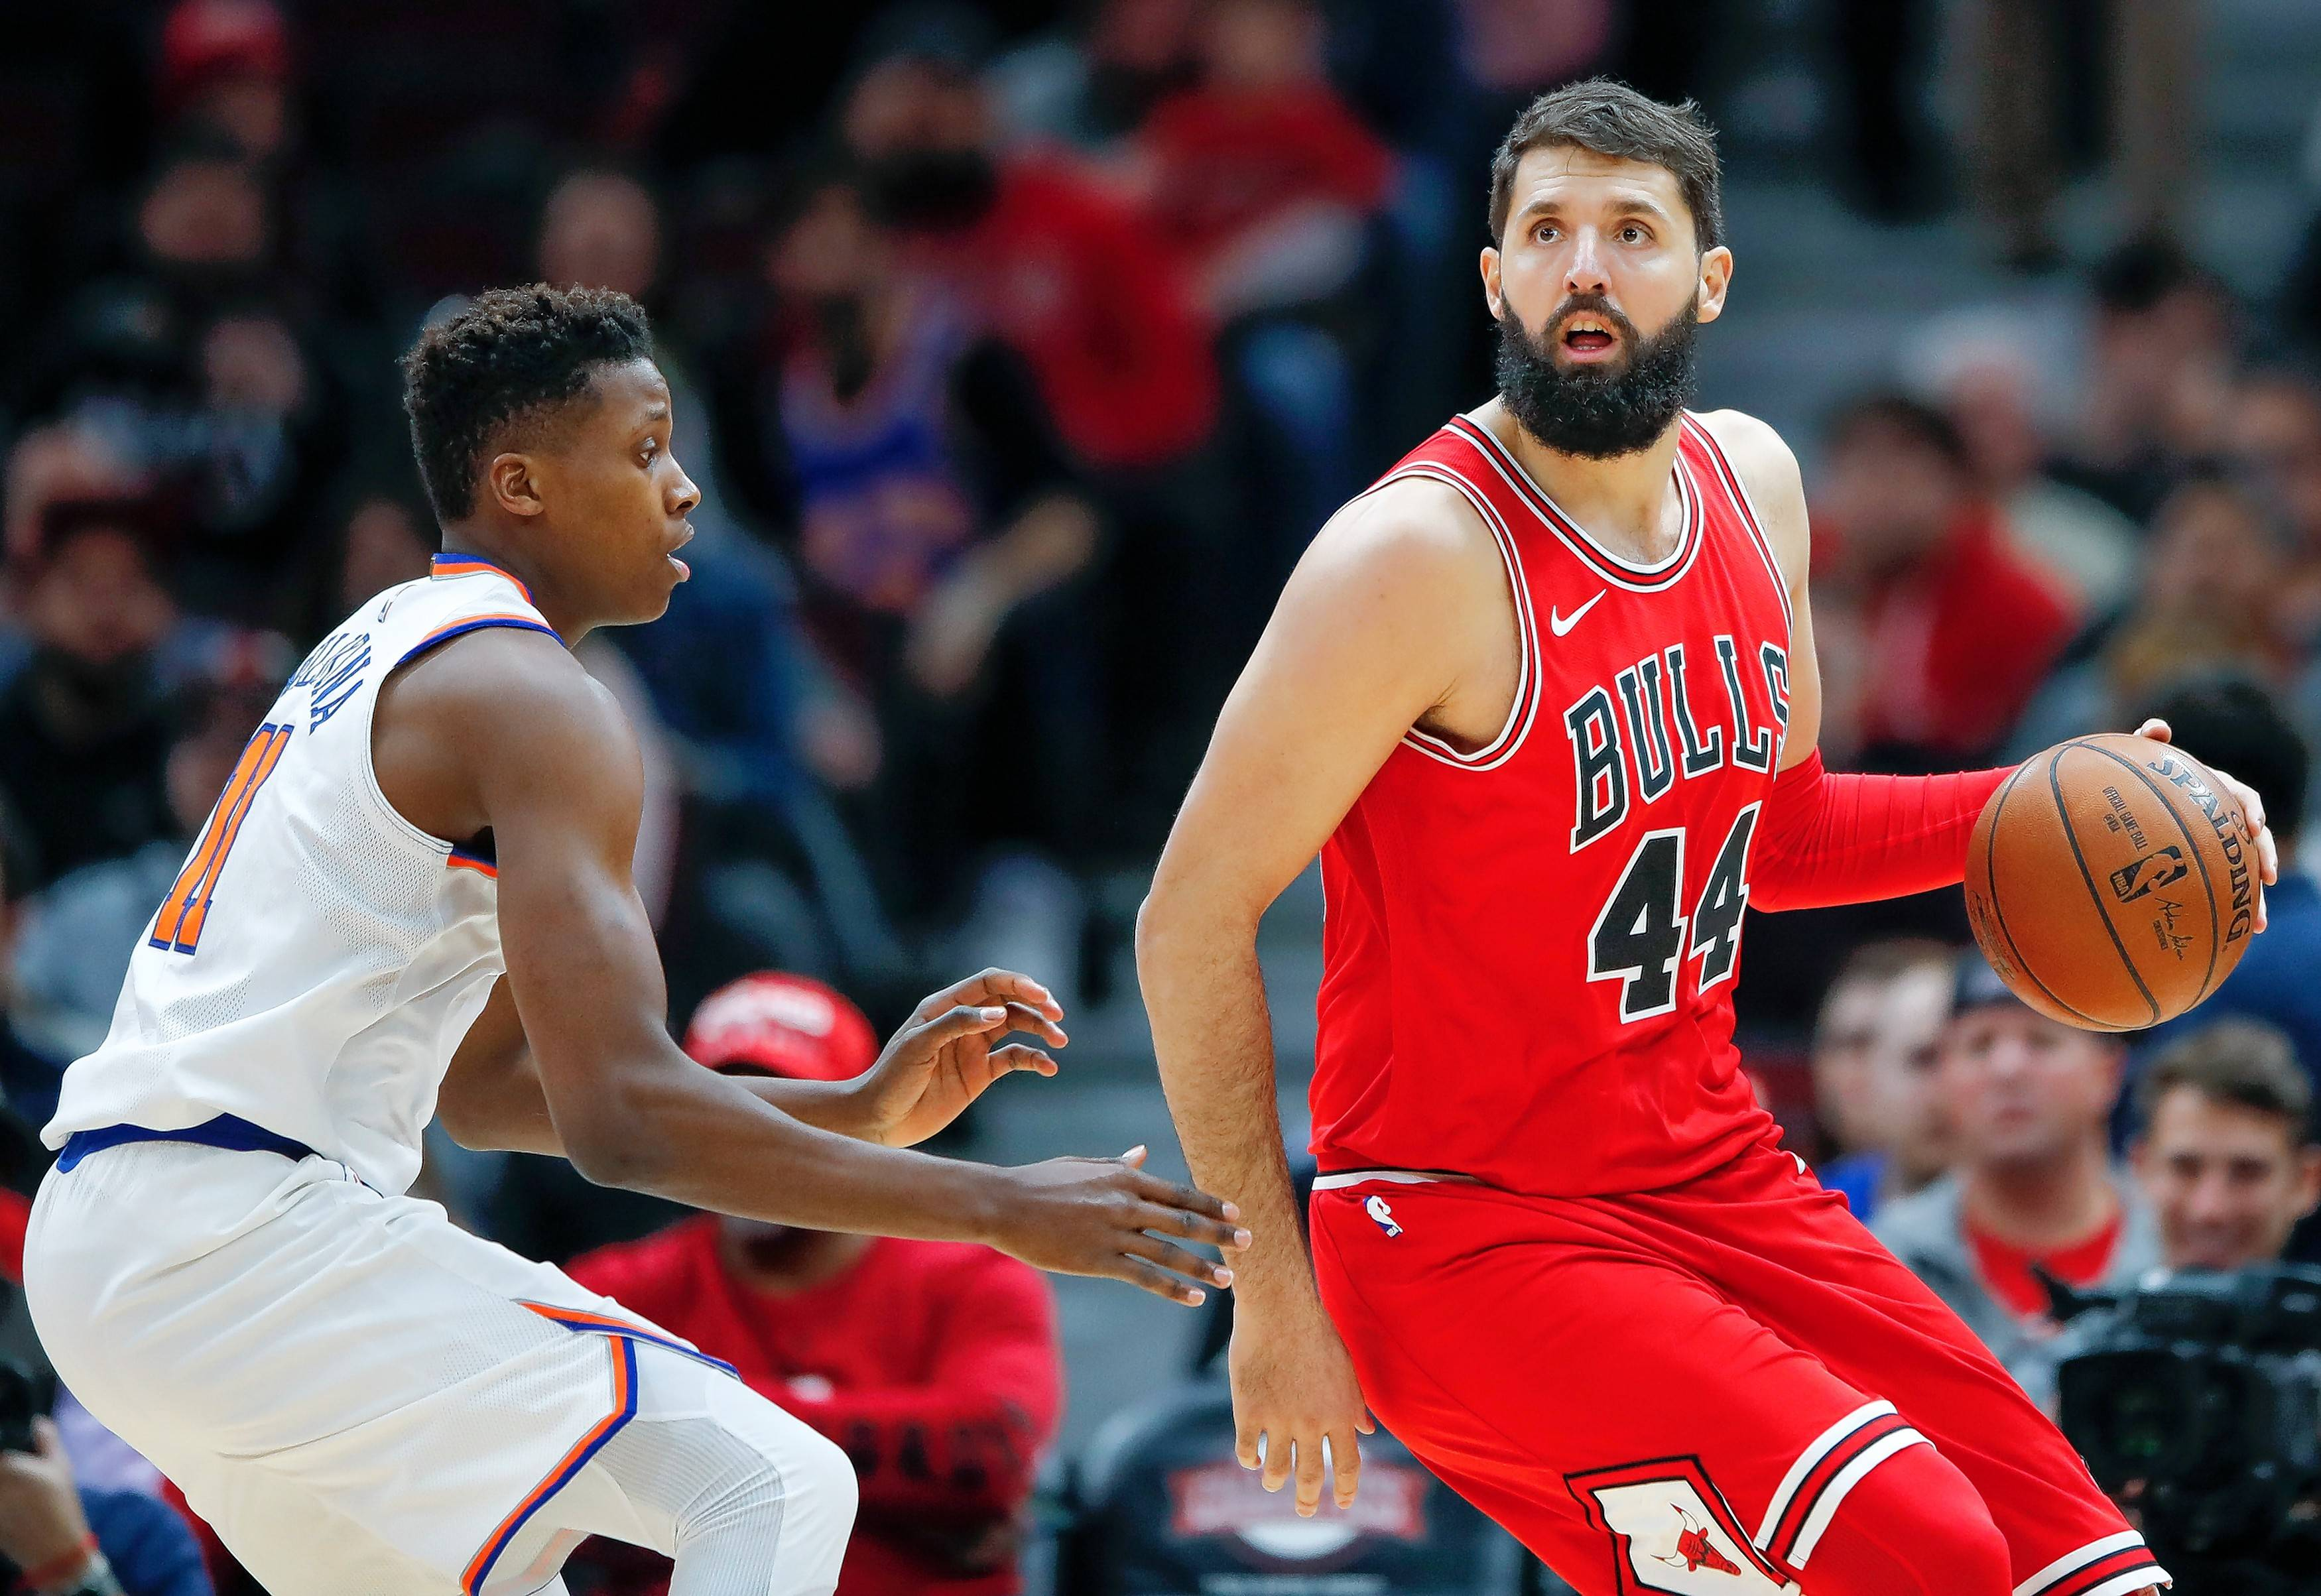 Chicago Bulls forward Nikola Mirotic (44) is defended by New York Knicks guard Frank Ntilikina (11) during the first half of an NBA basketball game, Saturday, Dec. 9, 2017, in Chicago. (AP Photo/Kamil Krzaczynski)